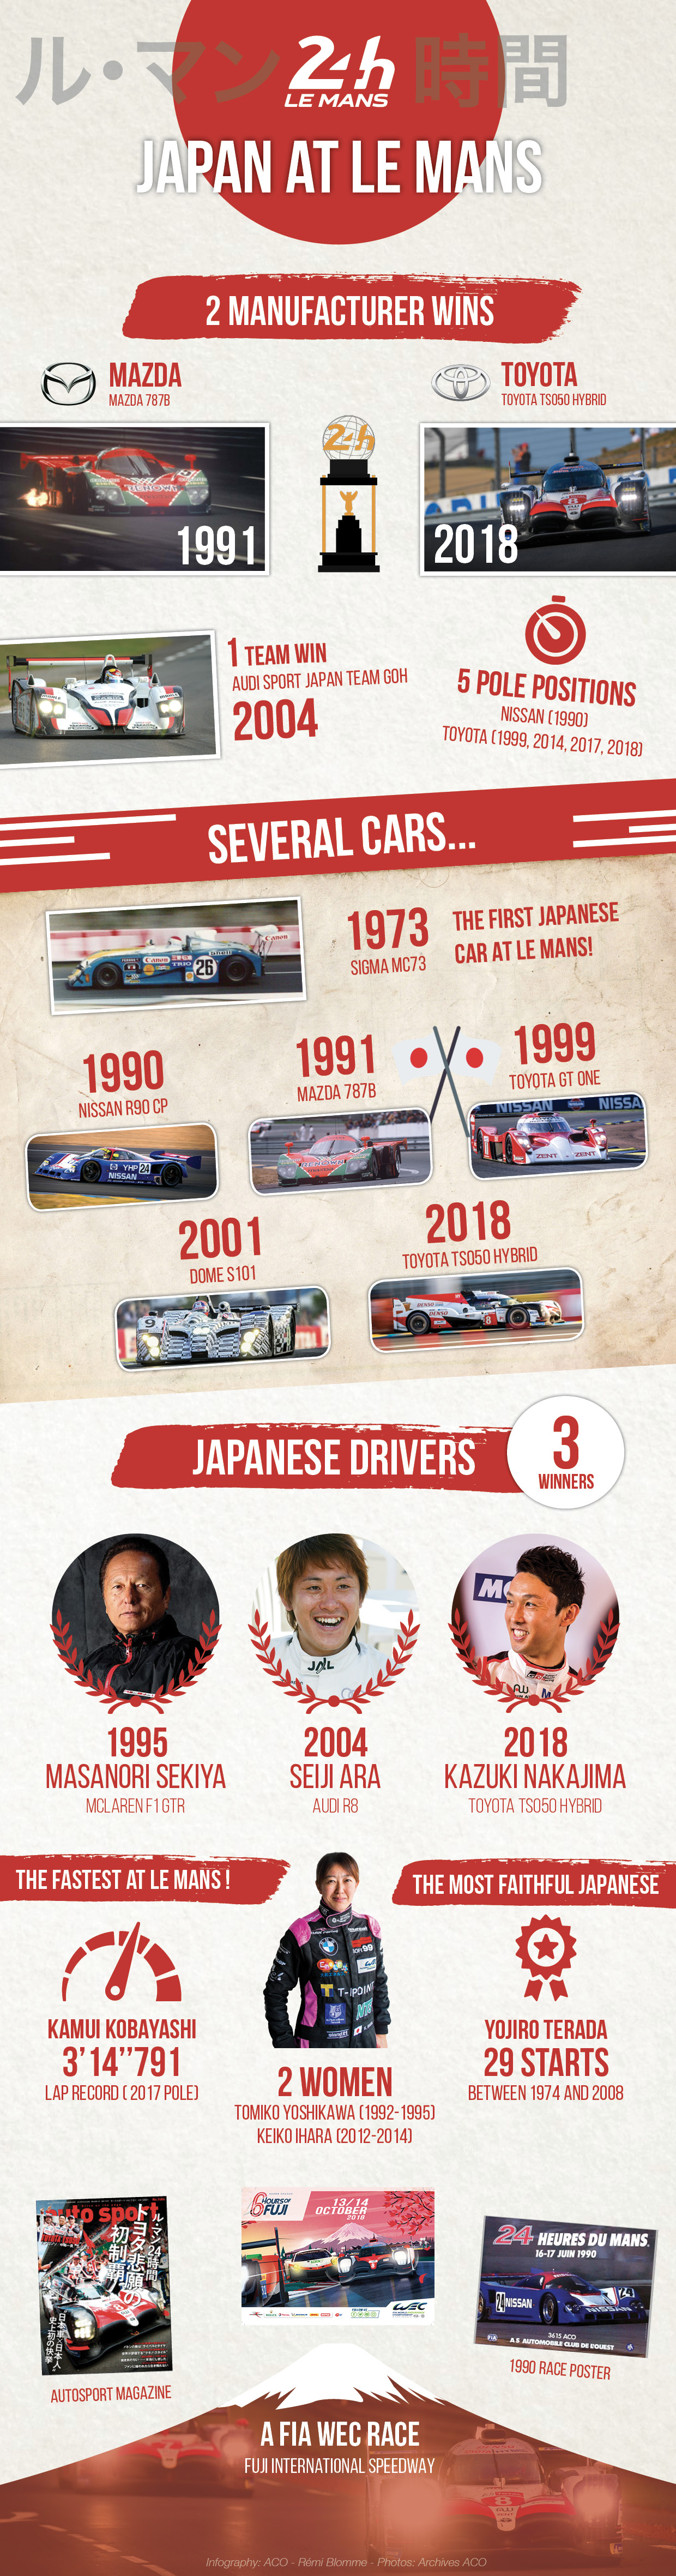 Japan at the 24 Hours of Le Mans - Infographic